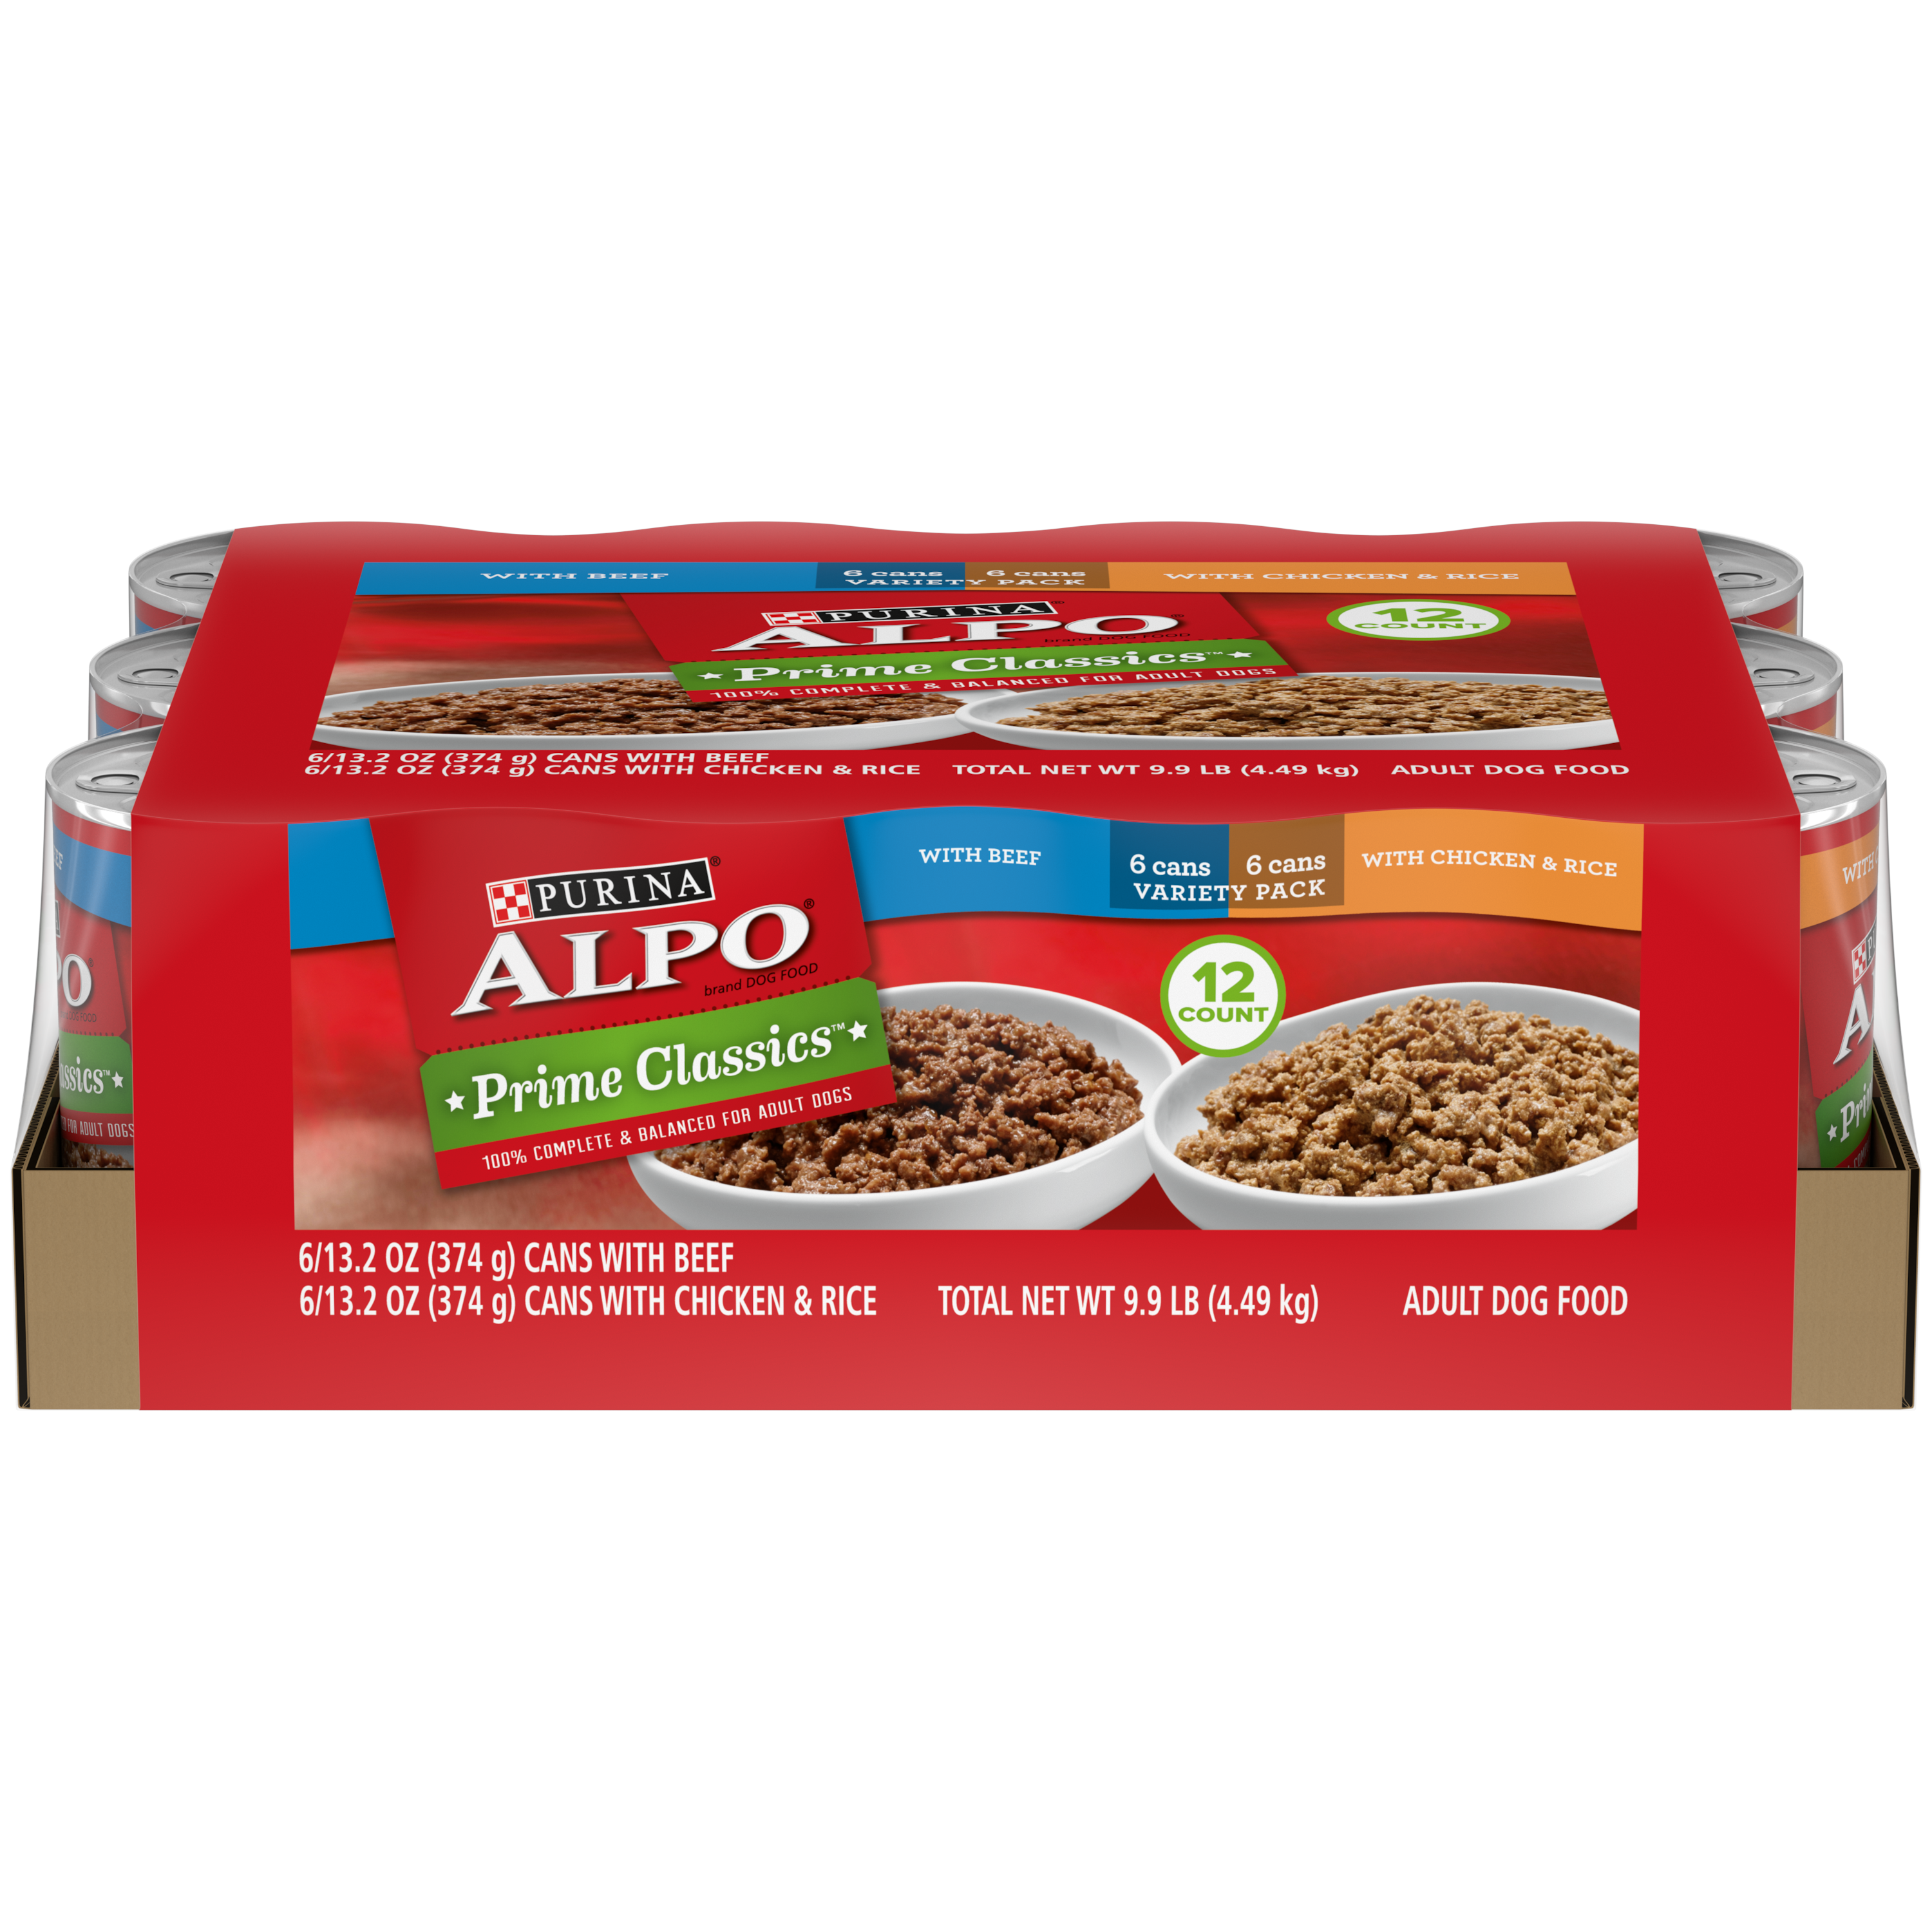 Alpo-Prime-Classics-Beef-and-Chicken-12ct-Wet-Dog-Food-Variety-Pack